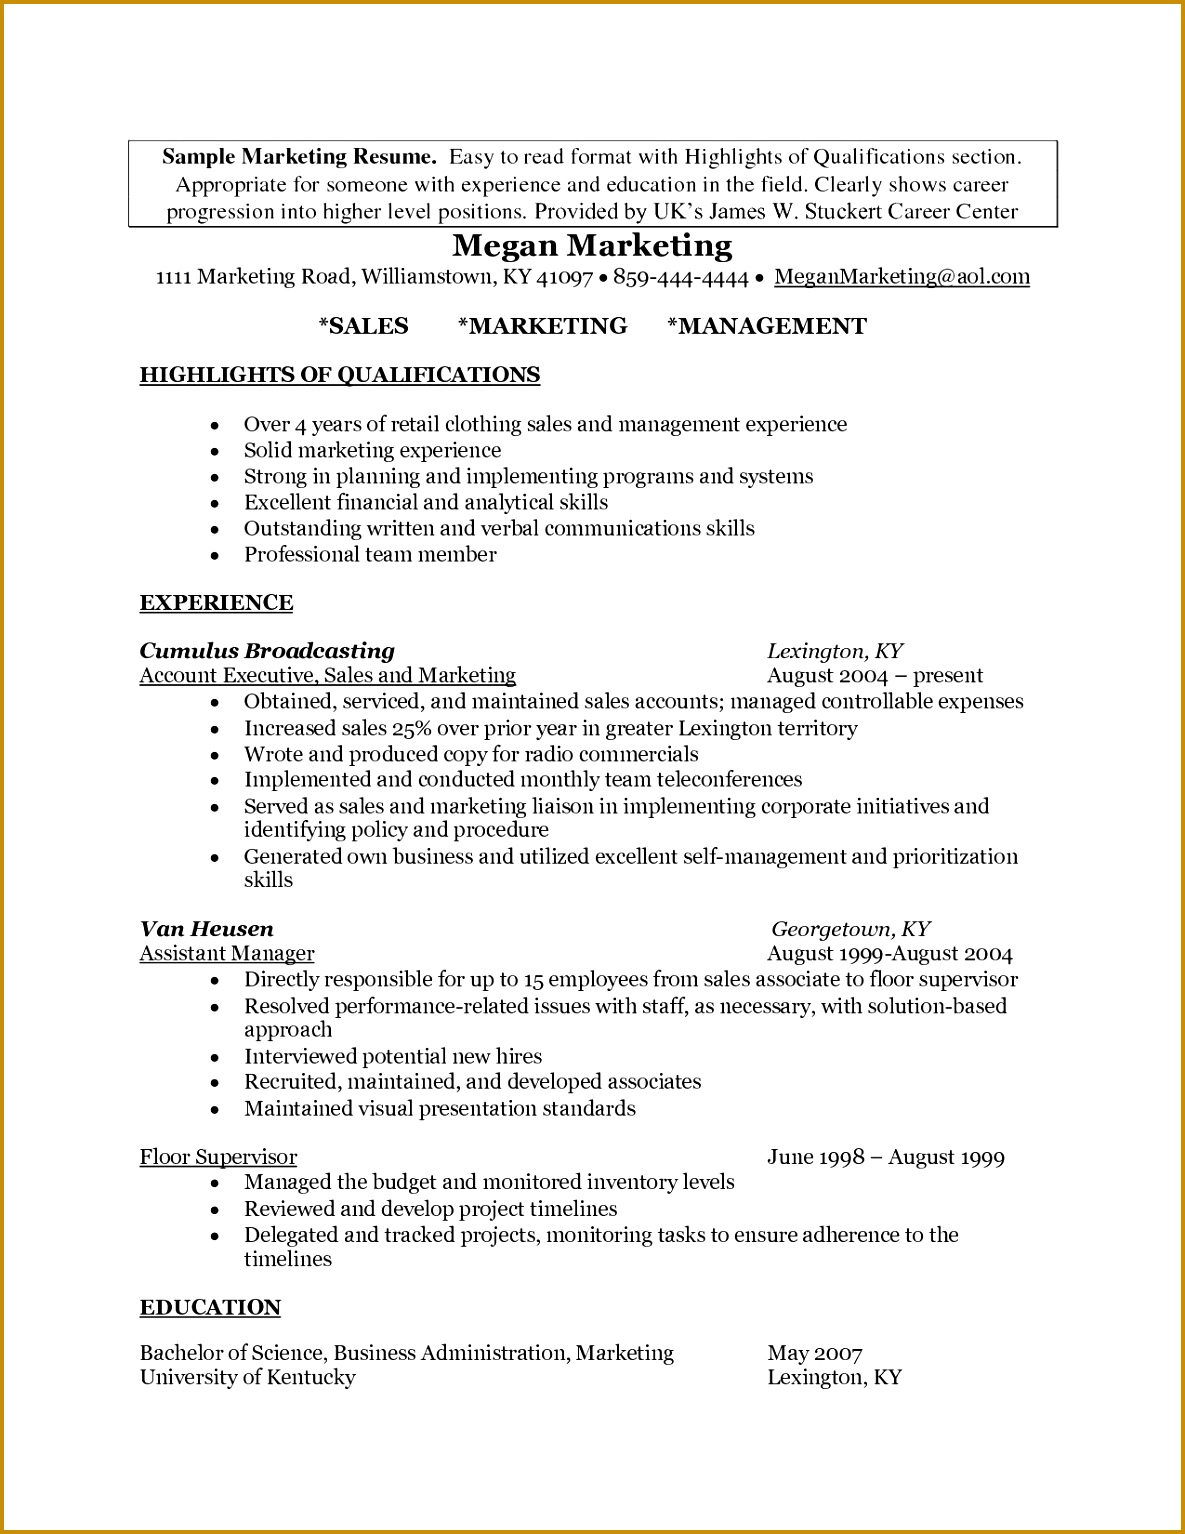 Example Resume Hr Manager Elegant New Programmer Resume Lovely Resume Cover Letter formatted Resume 0d 15341185